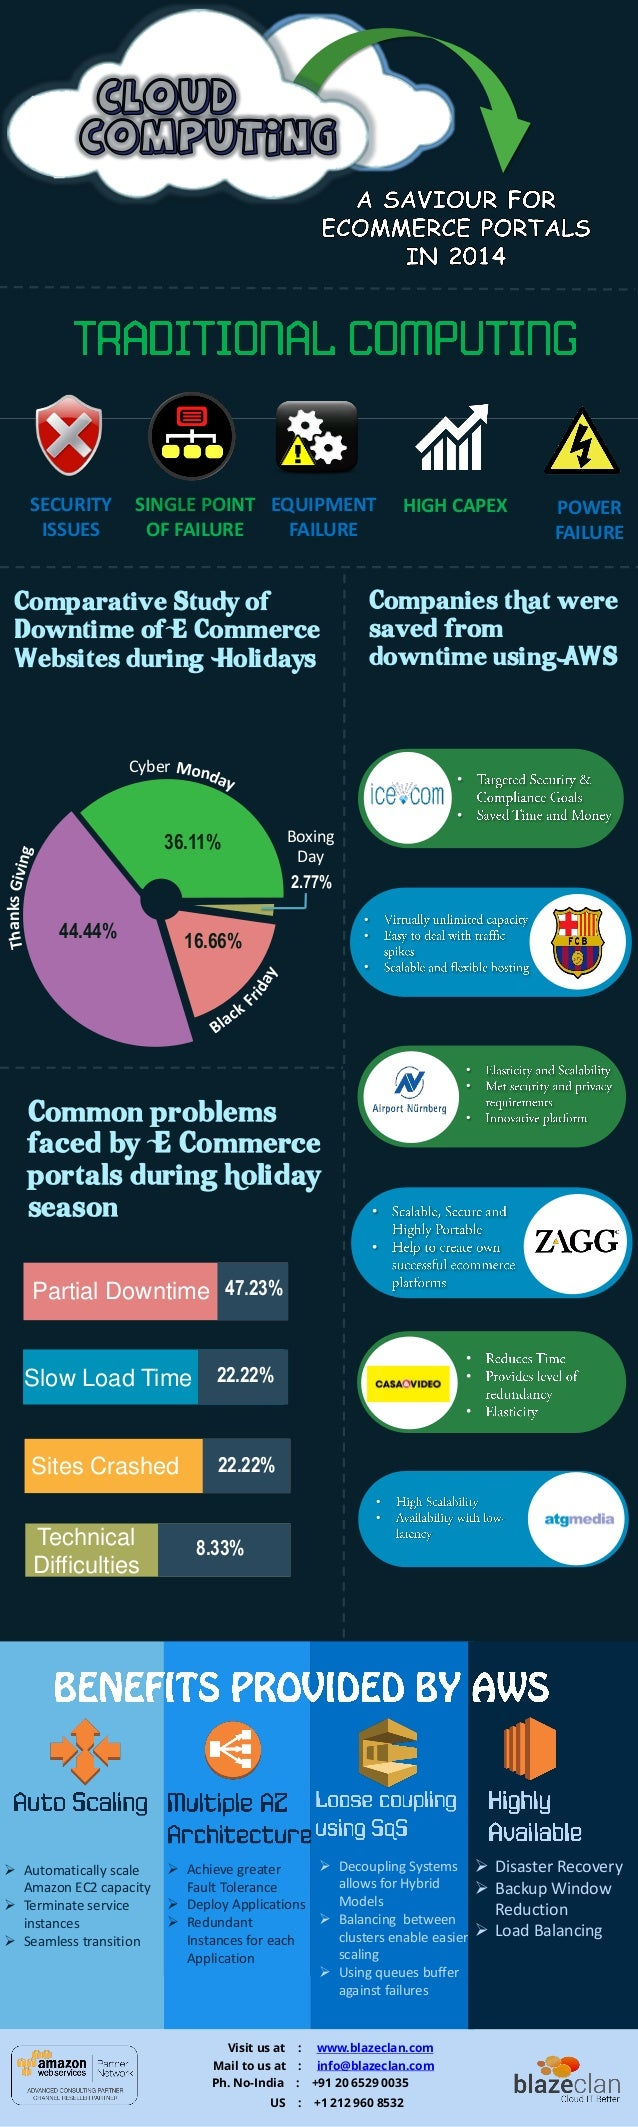 Comparative Study of Downtime of E Commerce Websites during Holidays Common problems faced by E Commerce portals during ho...